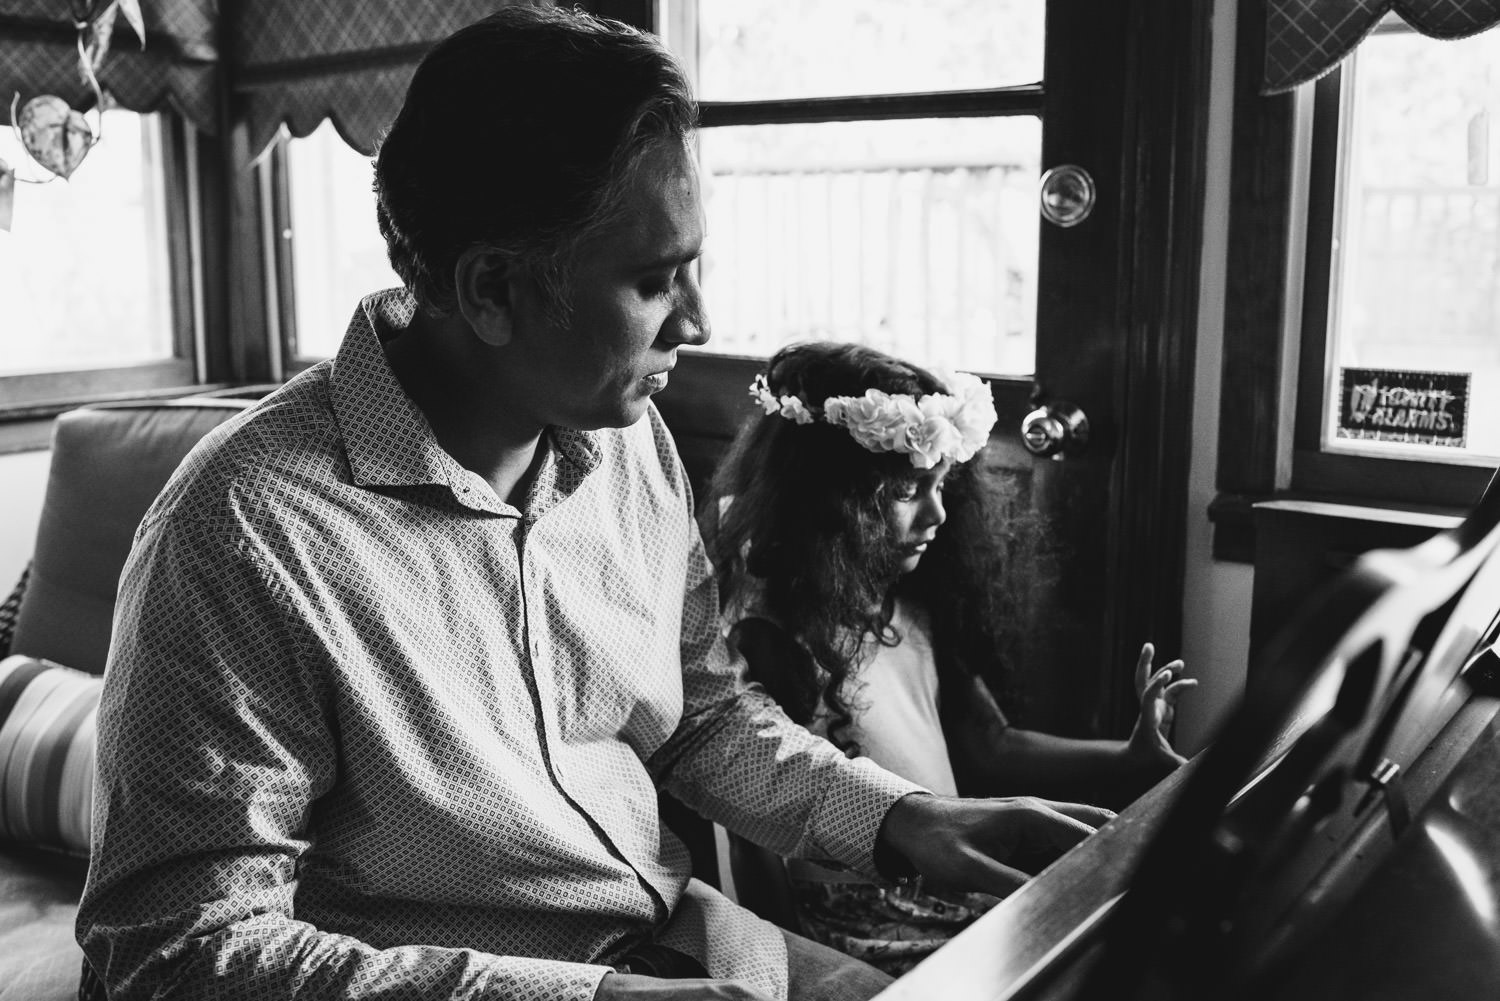 A father plays piano with his young daughter.